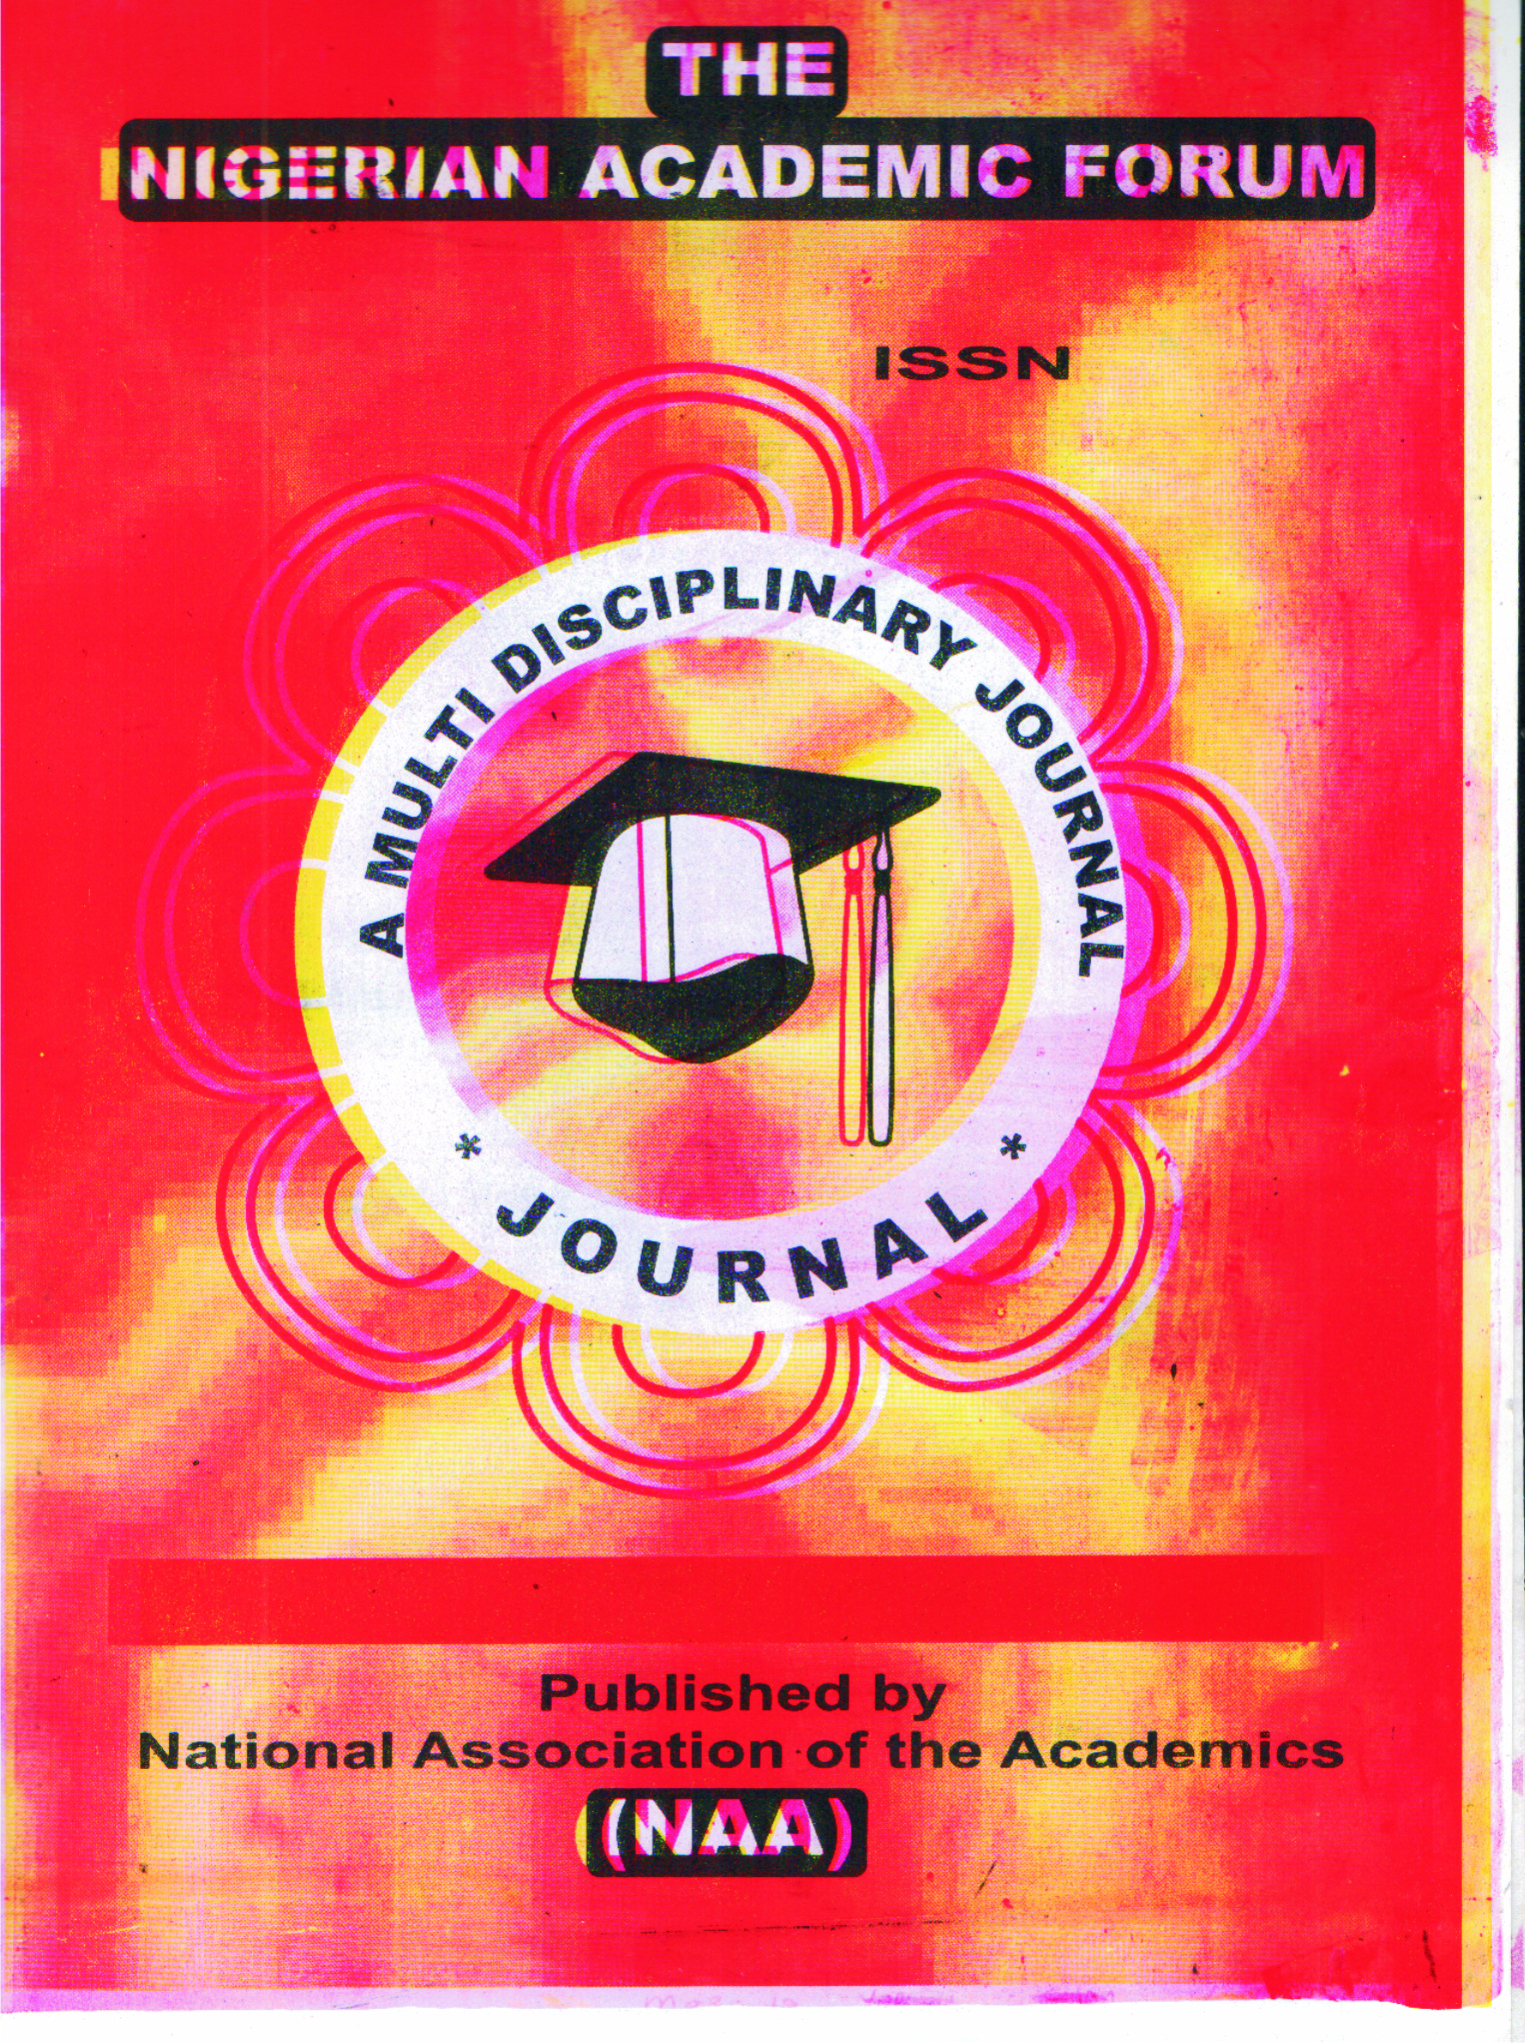 The Nigerian Academic Forum